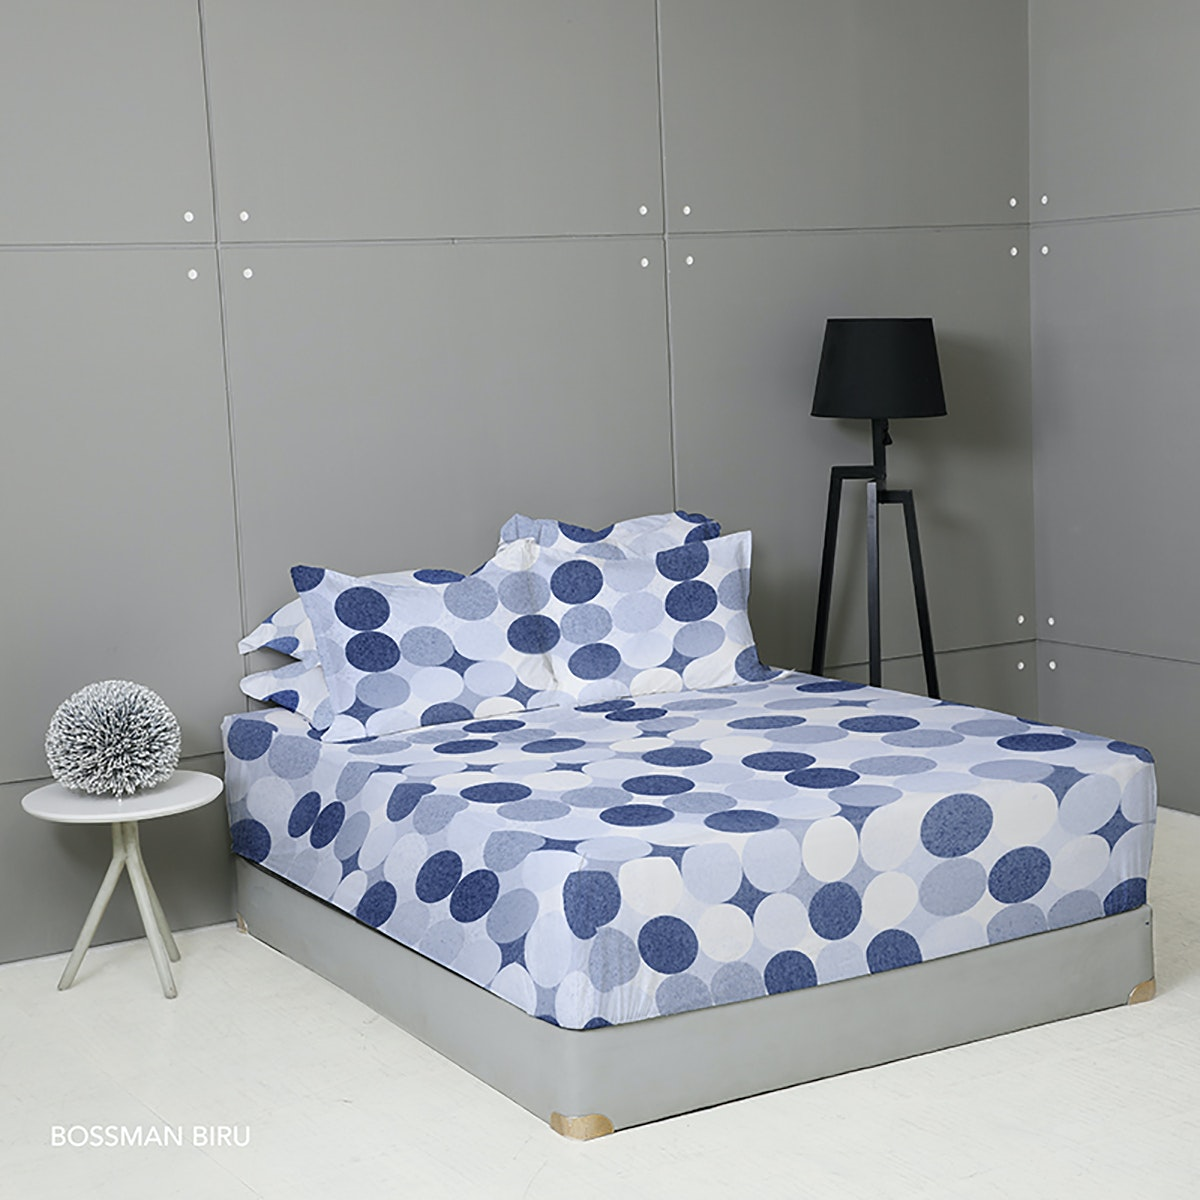 King Rabbit Set Sprei Sarung Bantal King Motif Boss Man - Biru Uk 180x200x40 cm